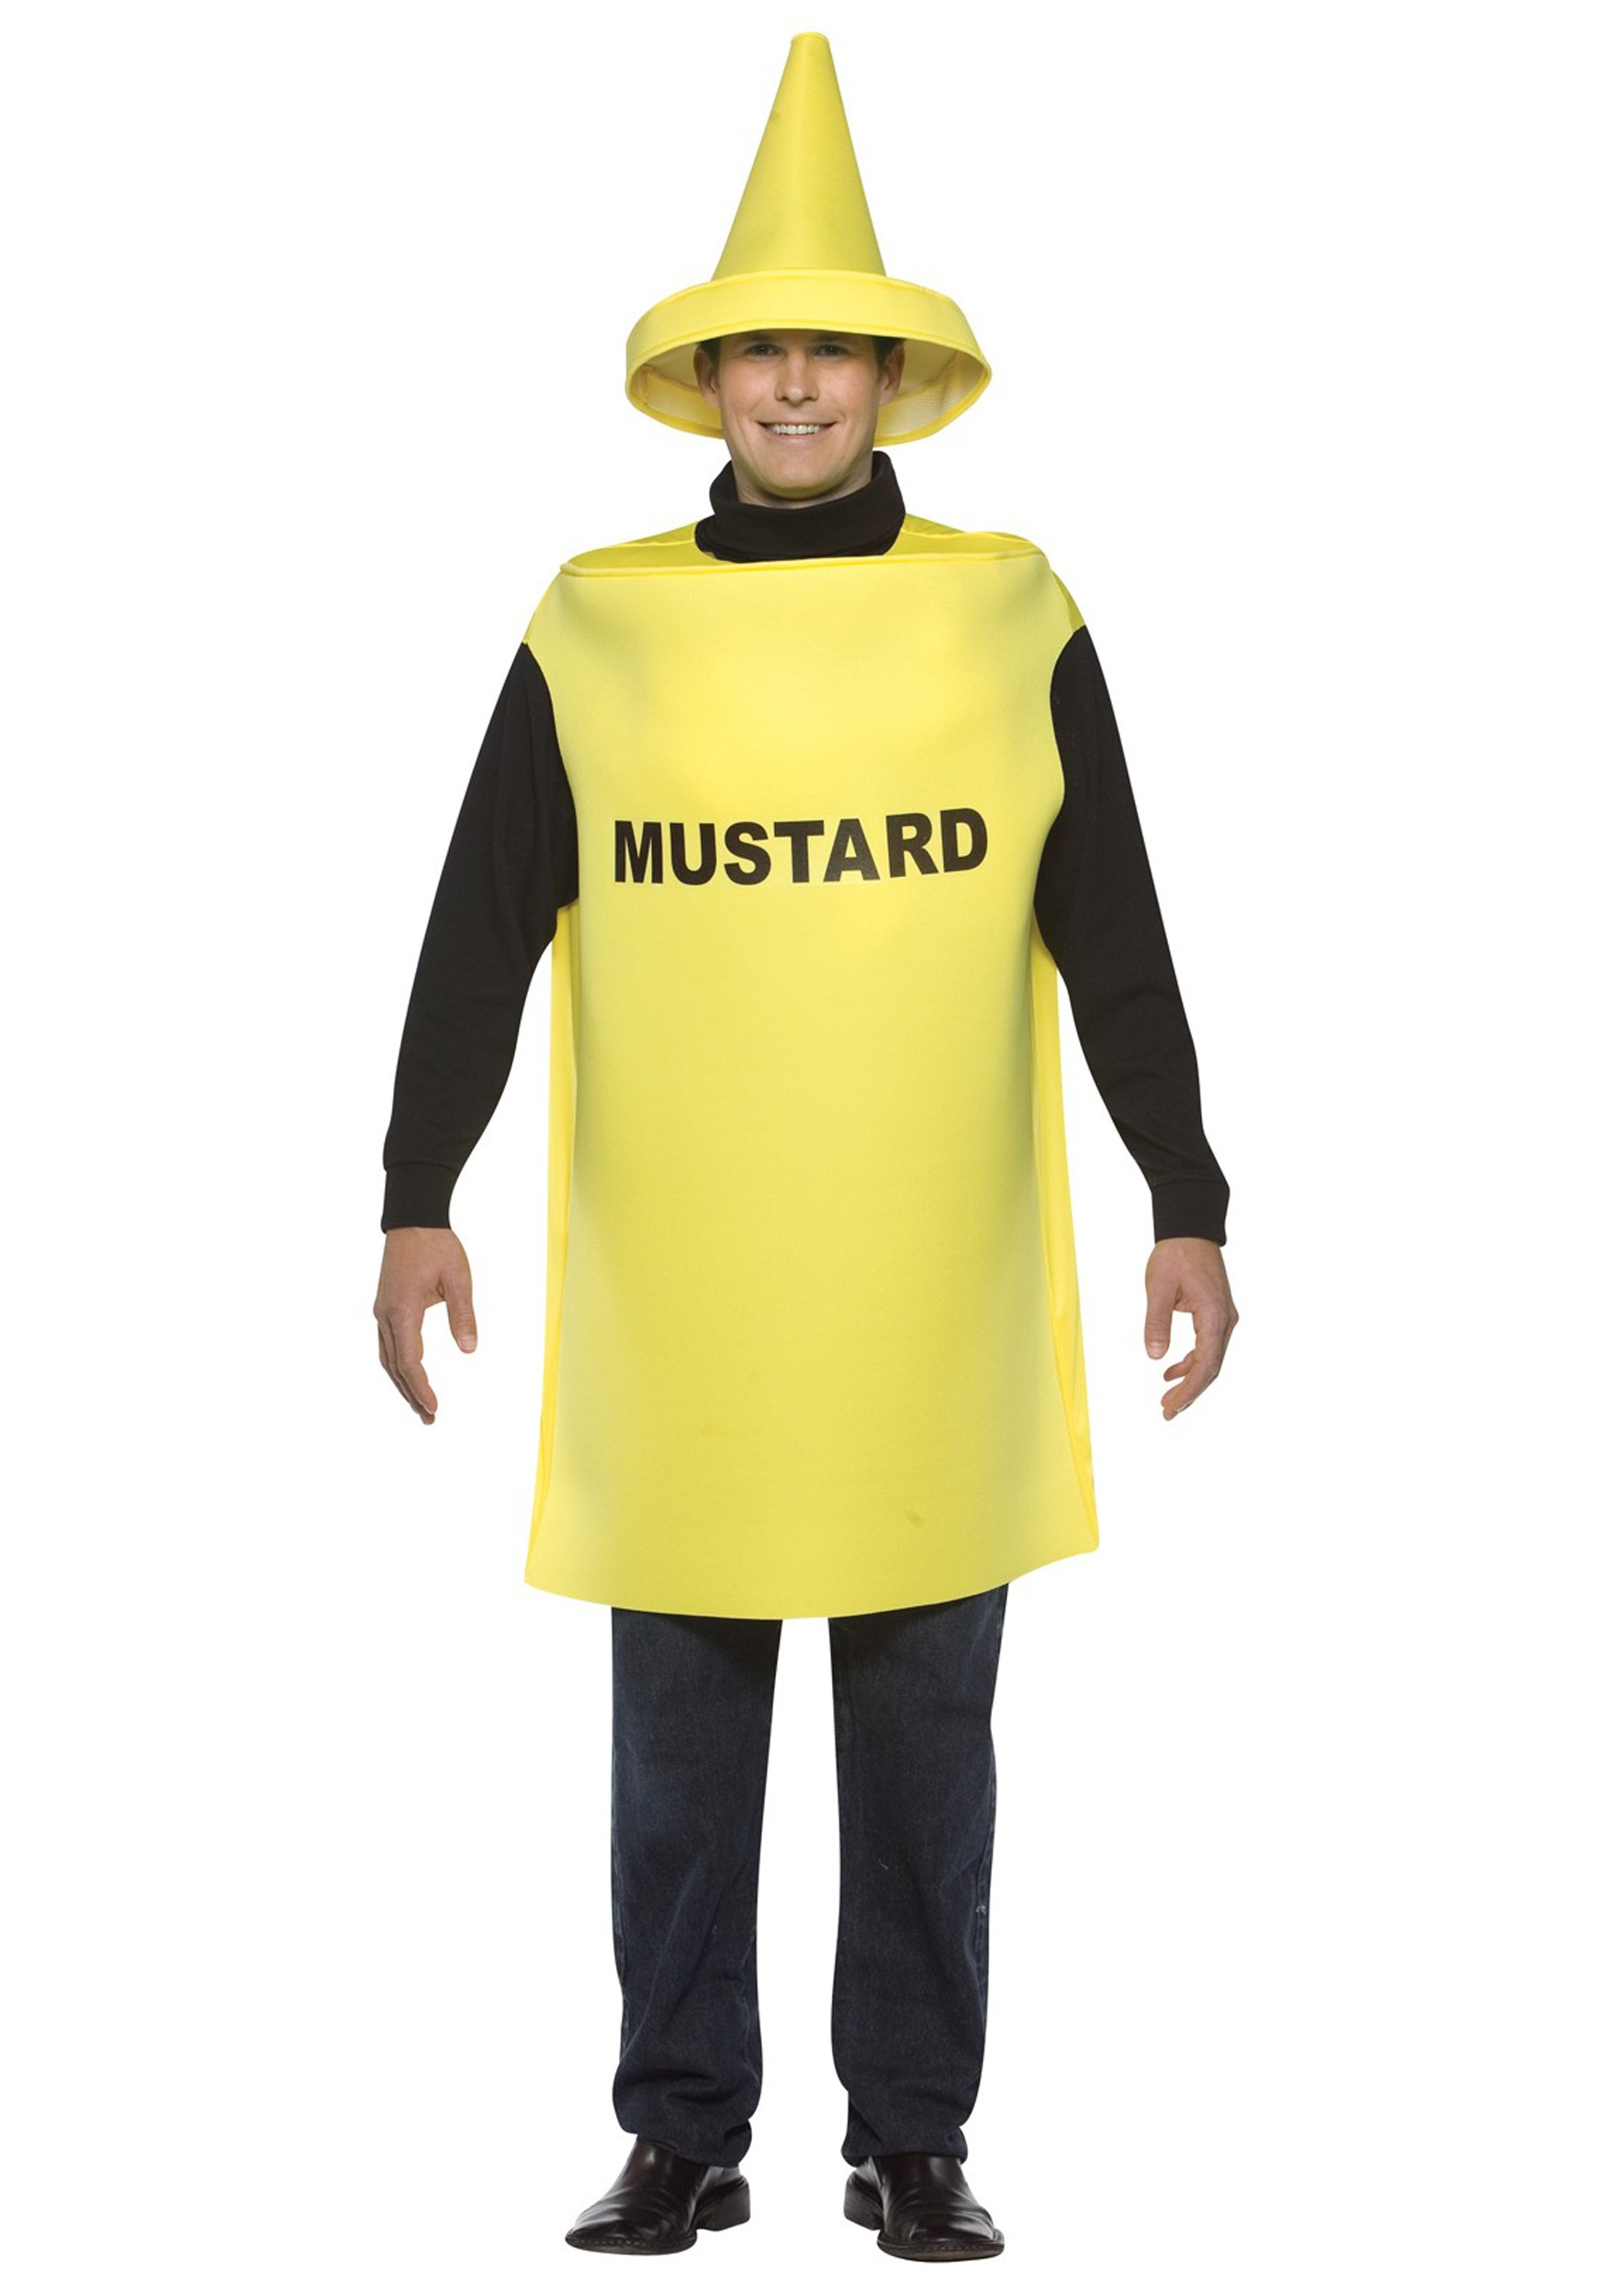 funny adult mustard costume - couples mustard and ketchup costumes